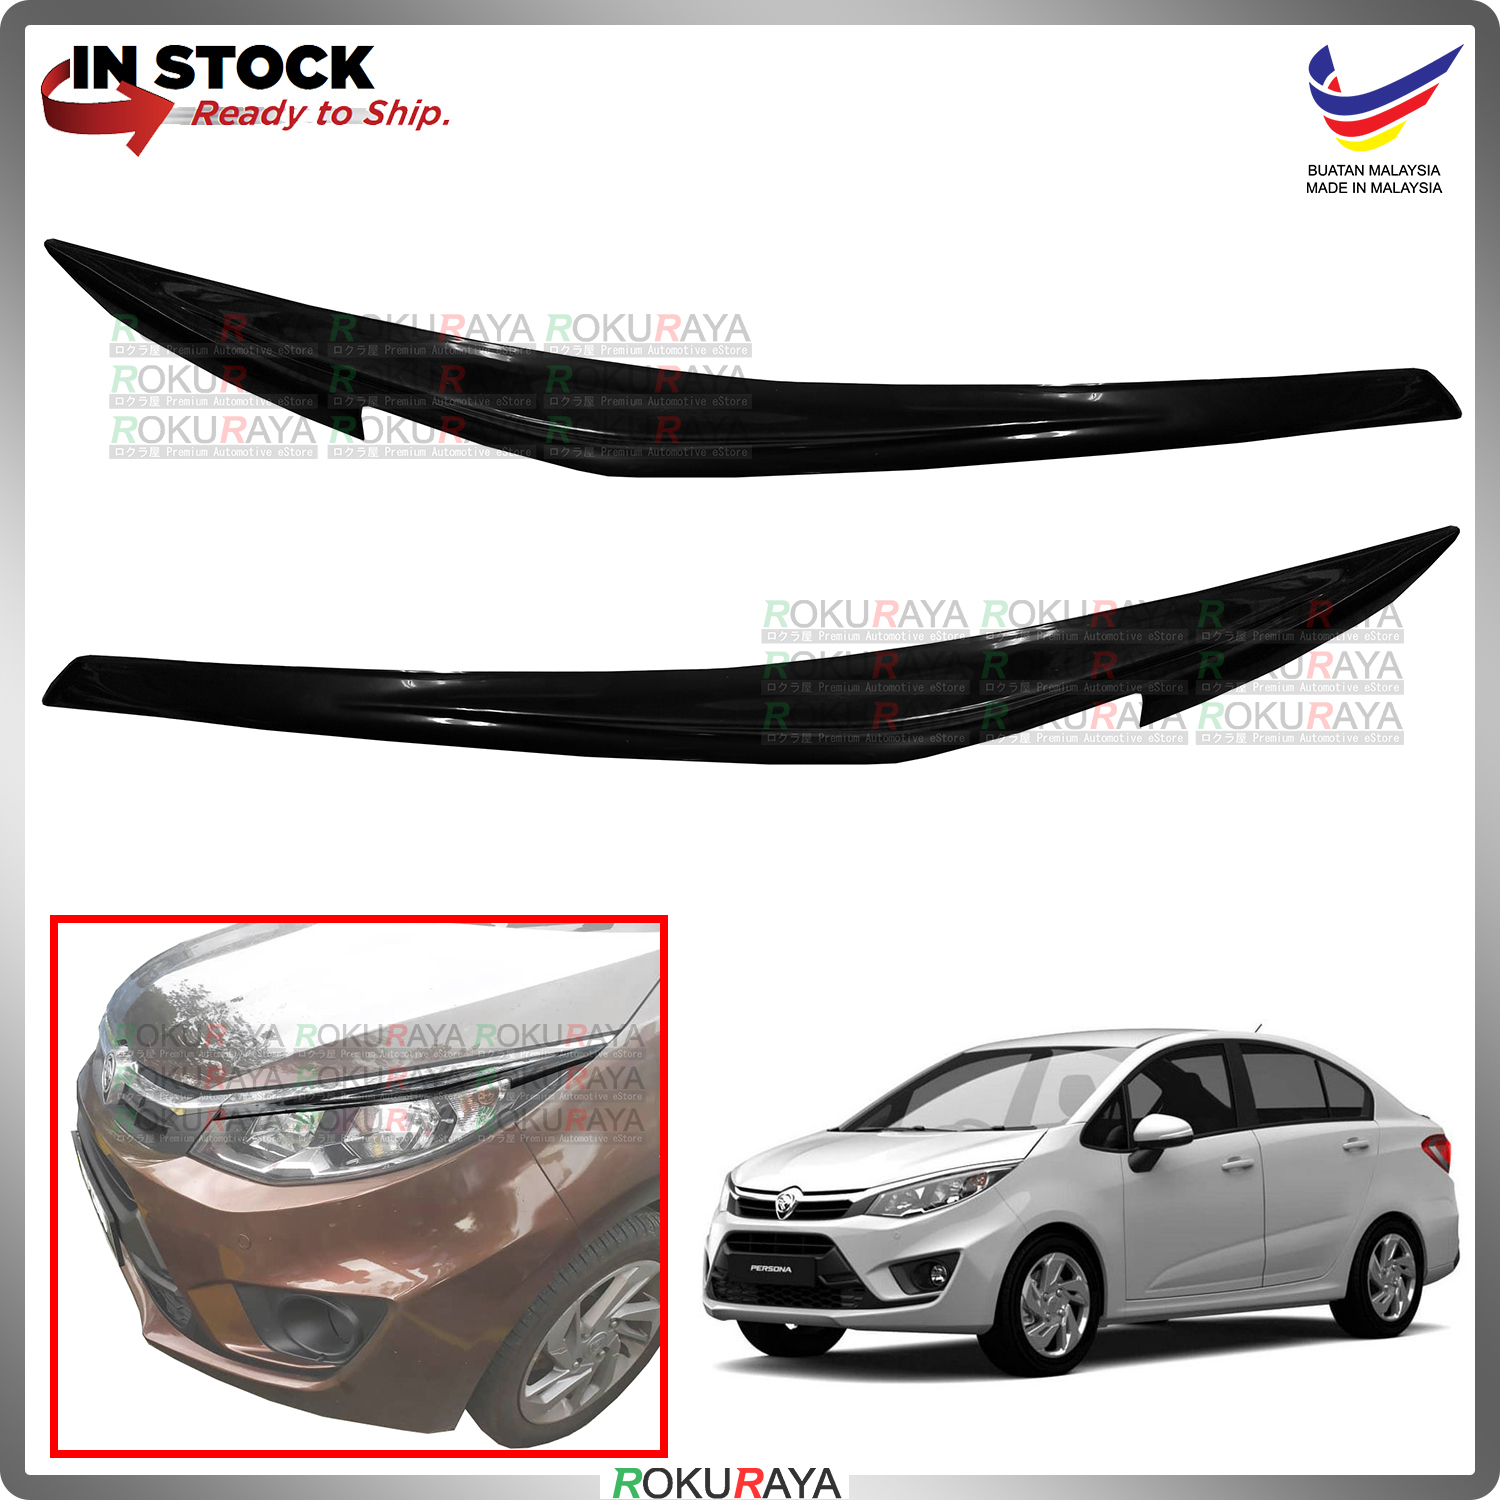 [BLACK] Proton Persona New VVT ABS Plastic Car Head Lamp Eye Lid Brow Cover Car Decoration Accessories Parts